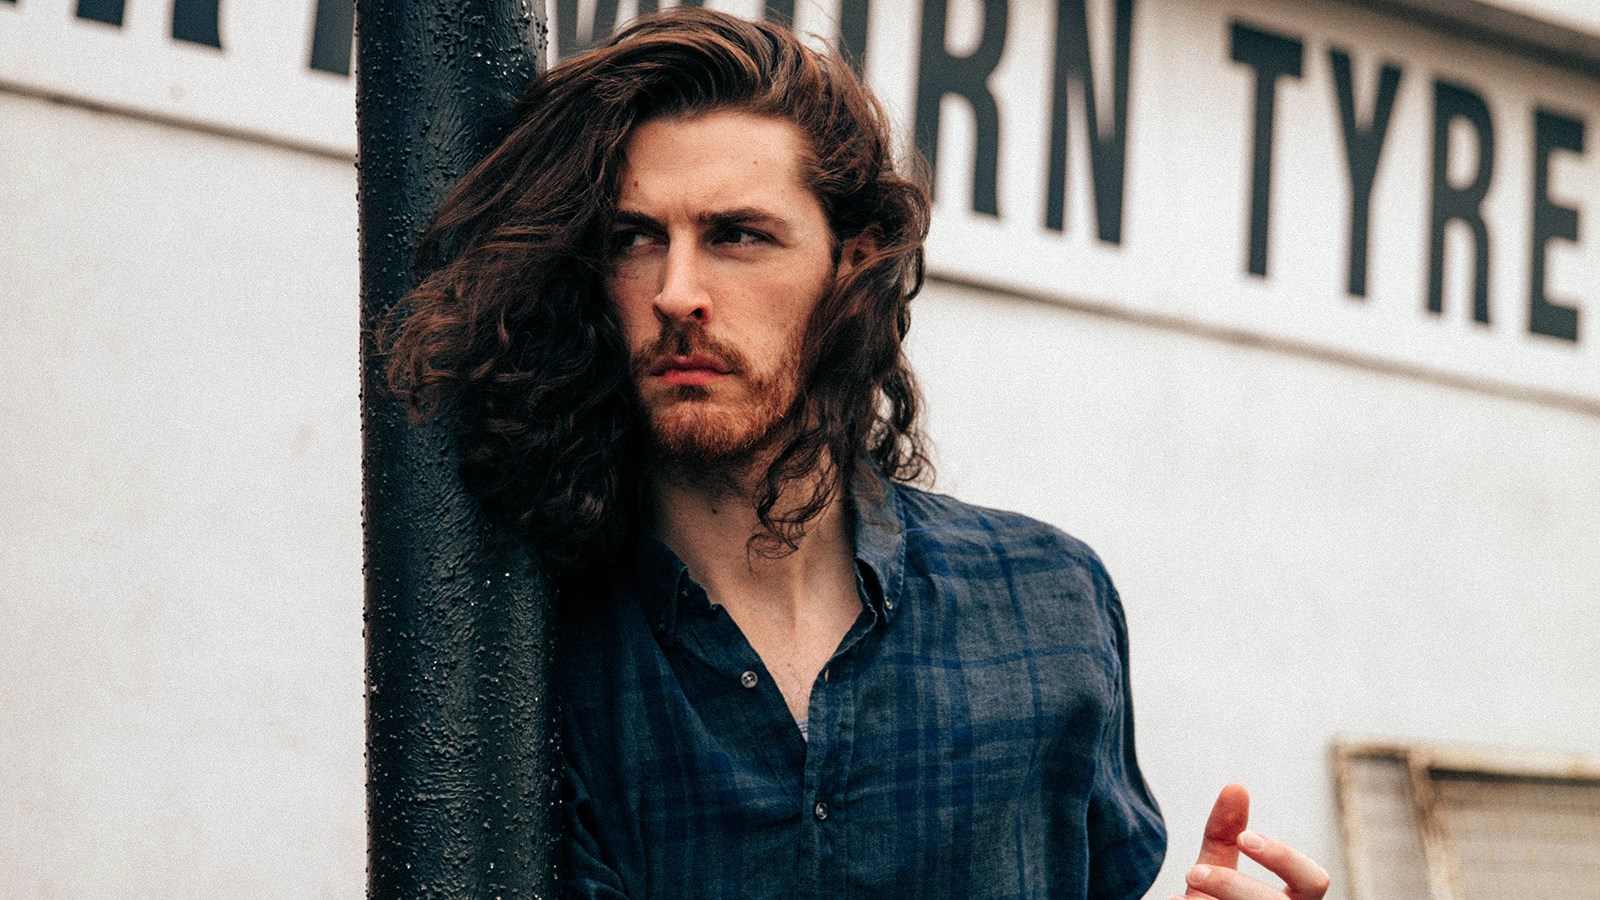 Hozier's Wasteland, Baby!: What You Need To Know